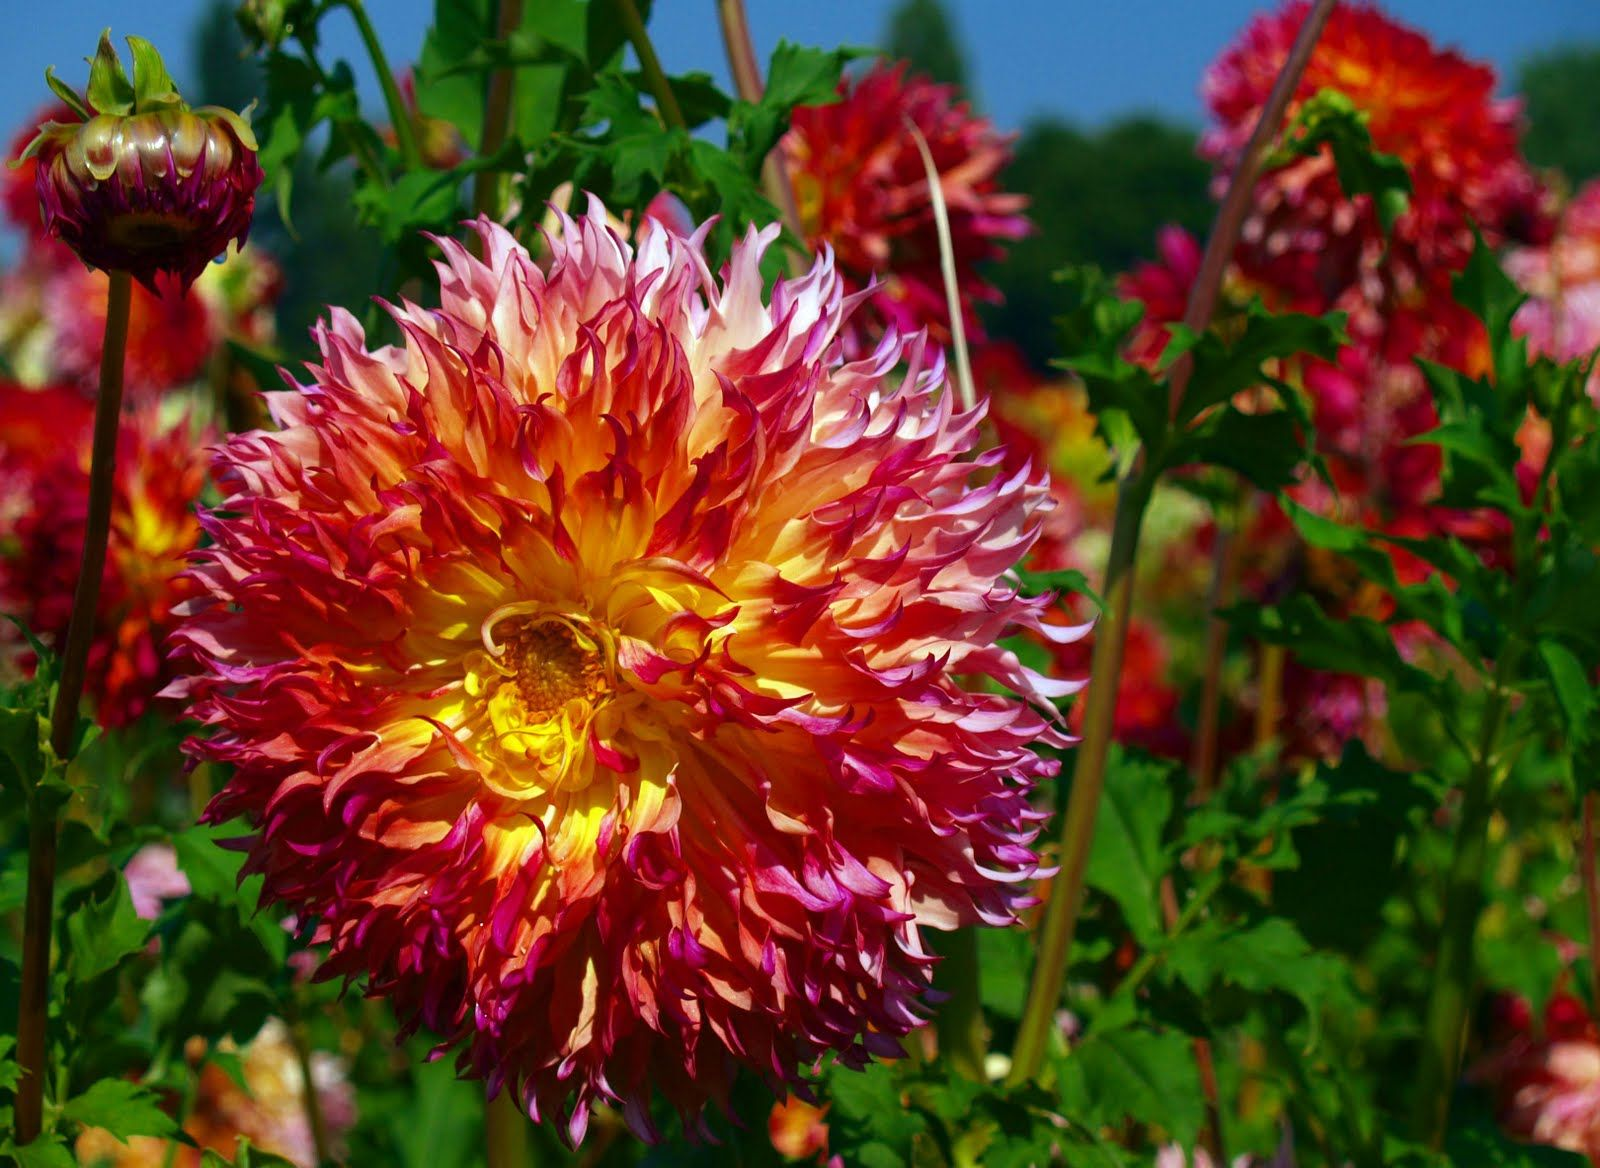 Dahlia Fields Canby Oregon In The Dahlia Festival Is Going On This